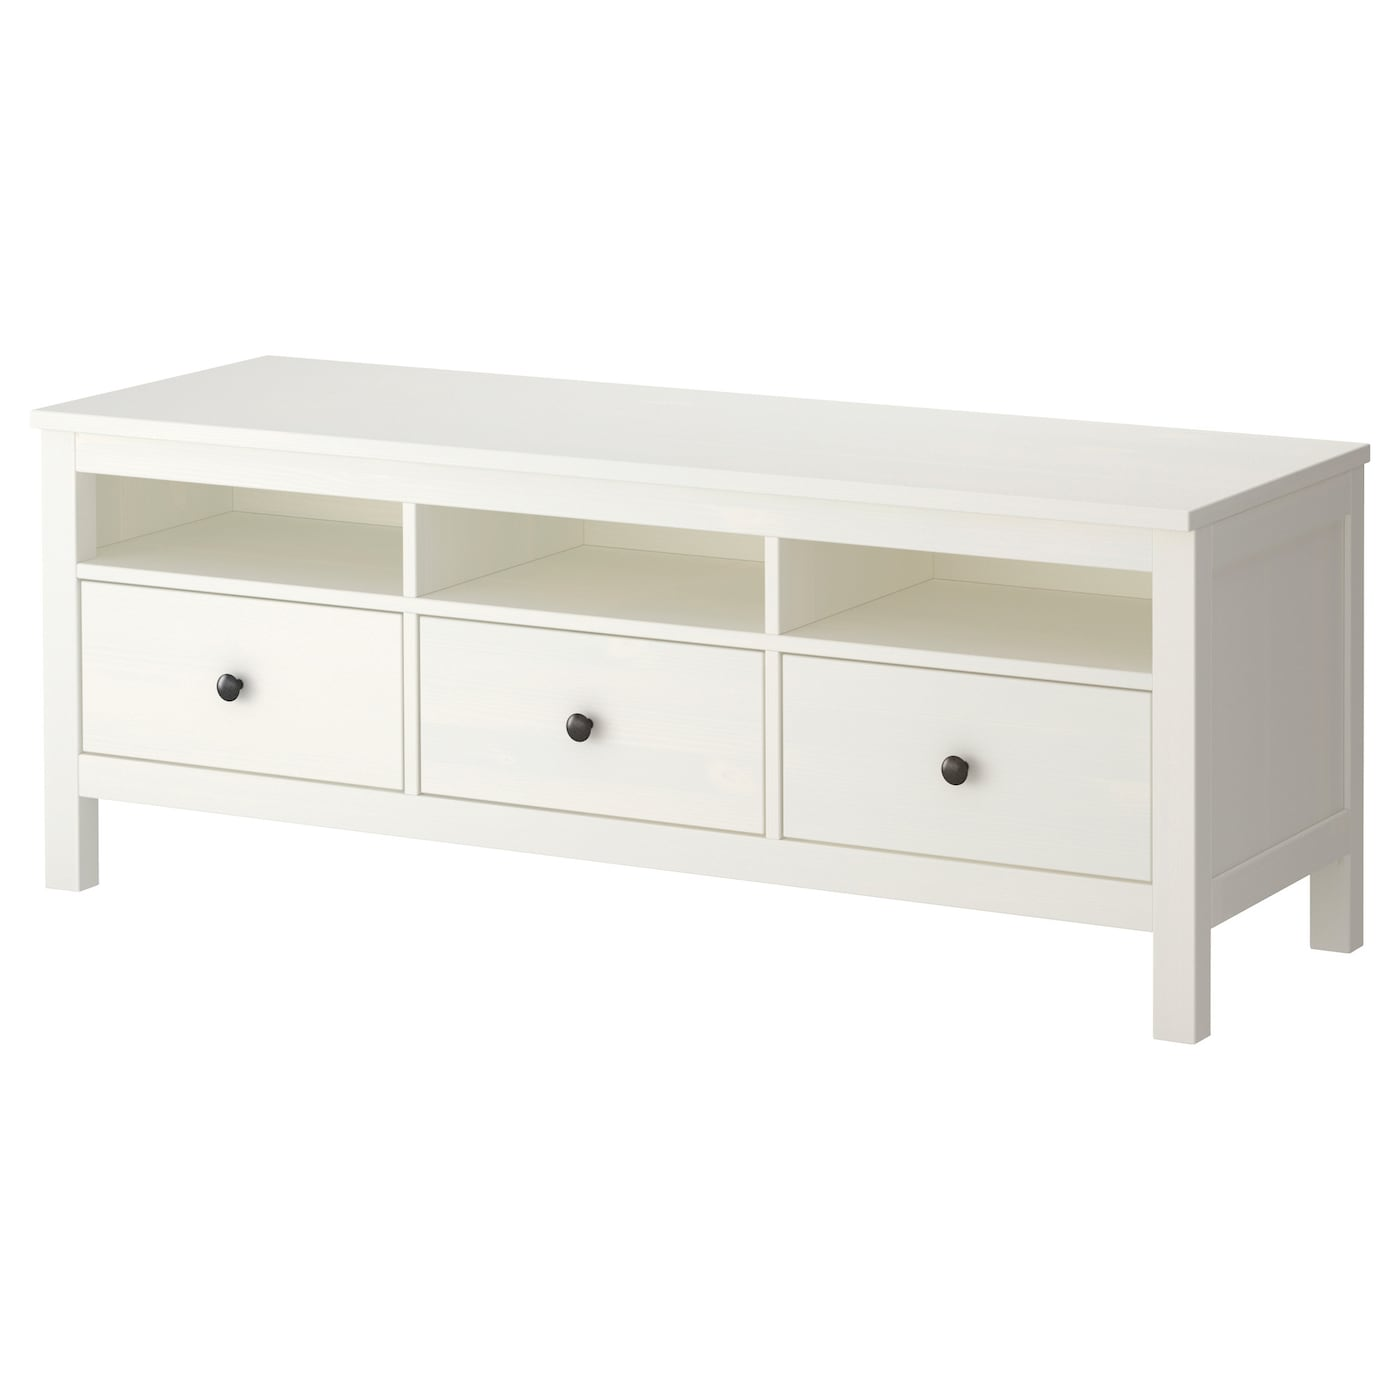 Ikea Hemnes Tv Bench Solid Wood Has A Natural Feel Open Compartments For Your Dvd